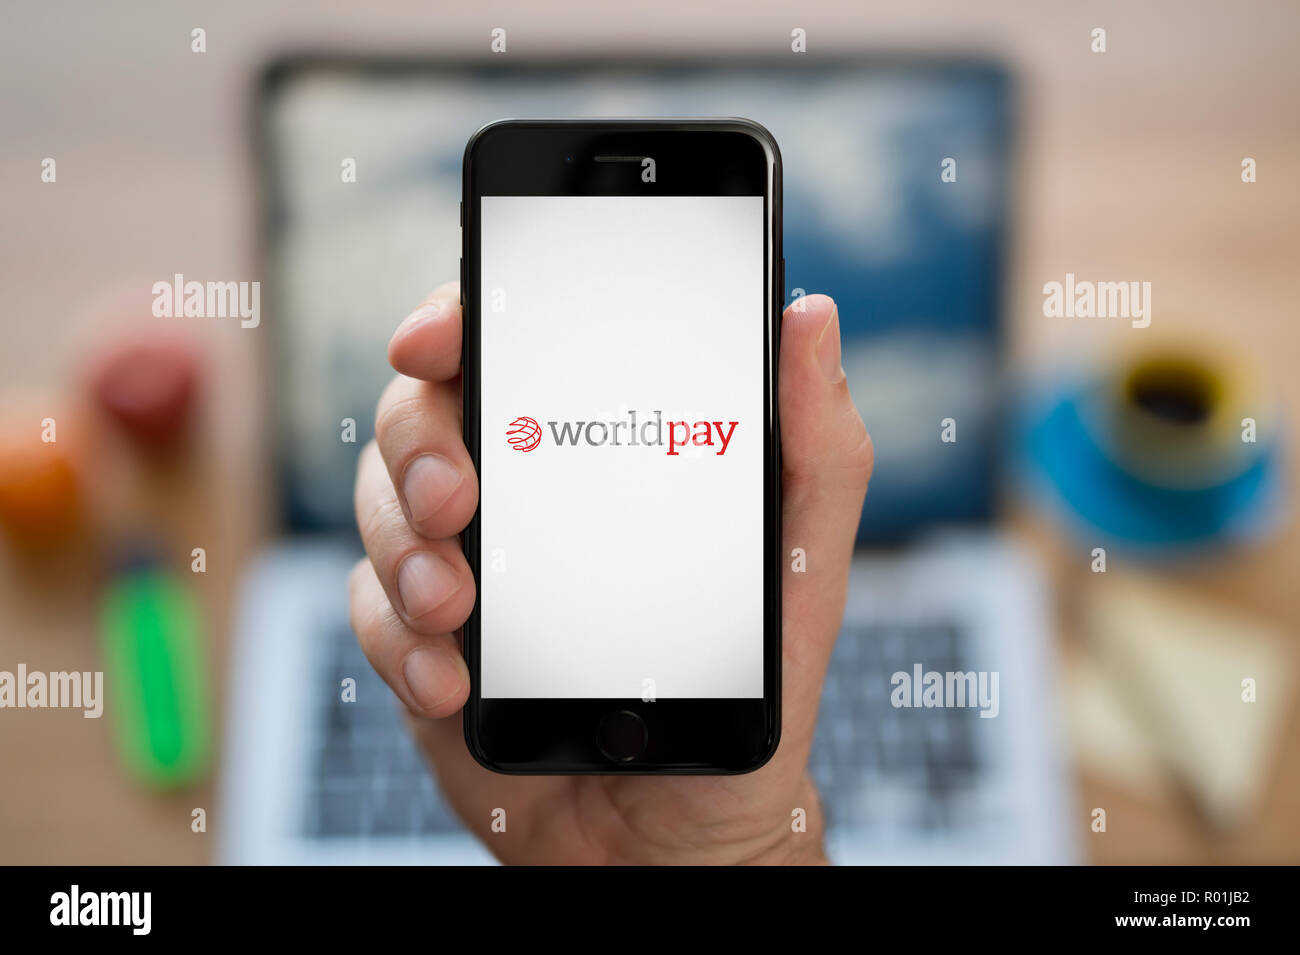 A man looks at his iPhone which displays the World Pay logo, while sat at his computer desk (Editorial use only). Stock Photo